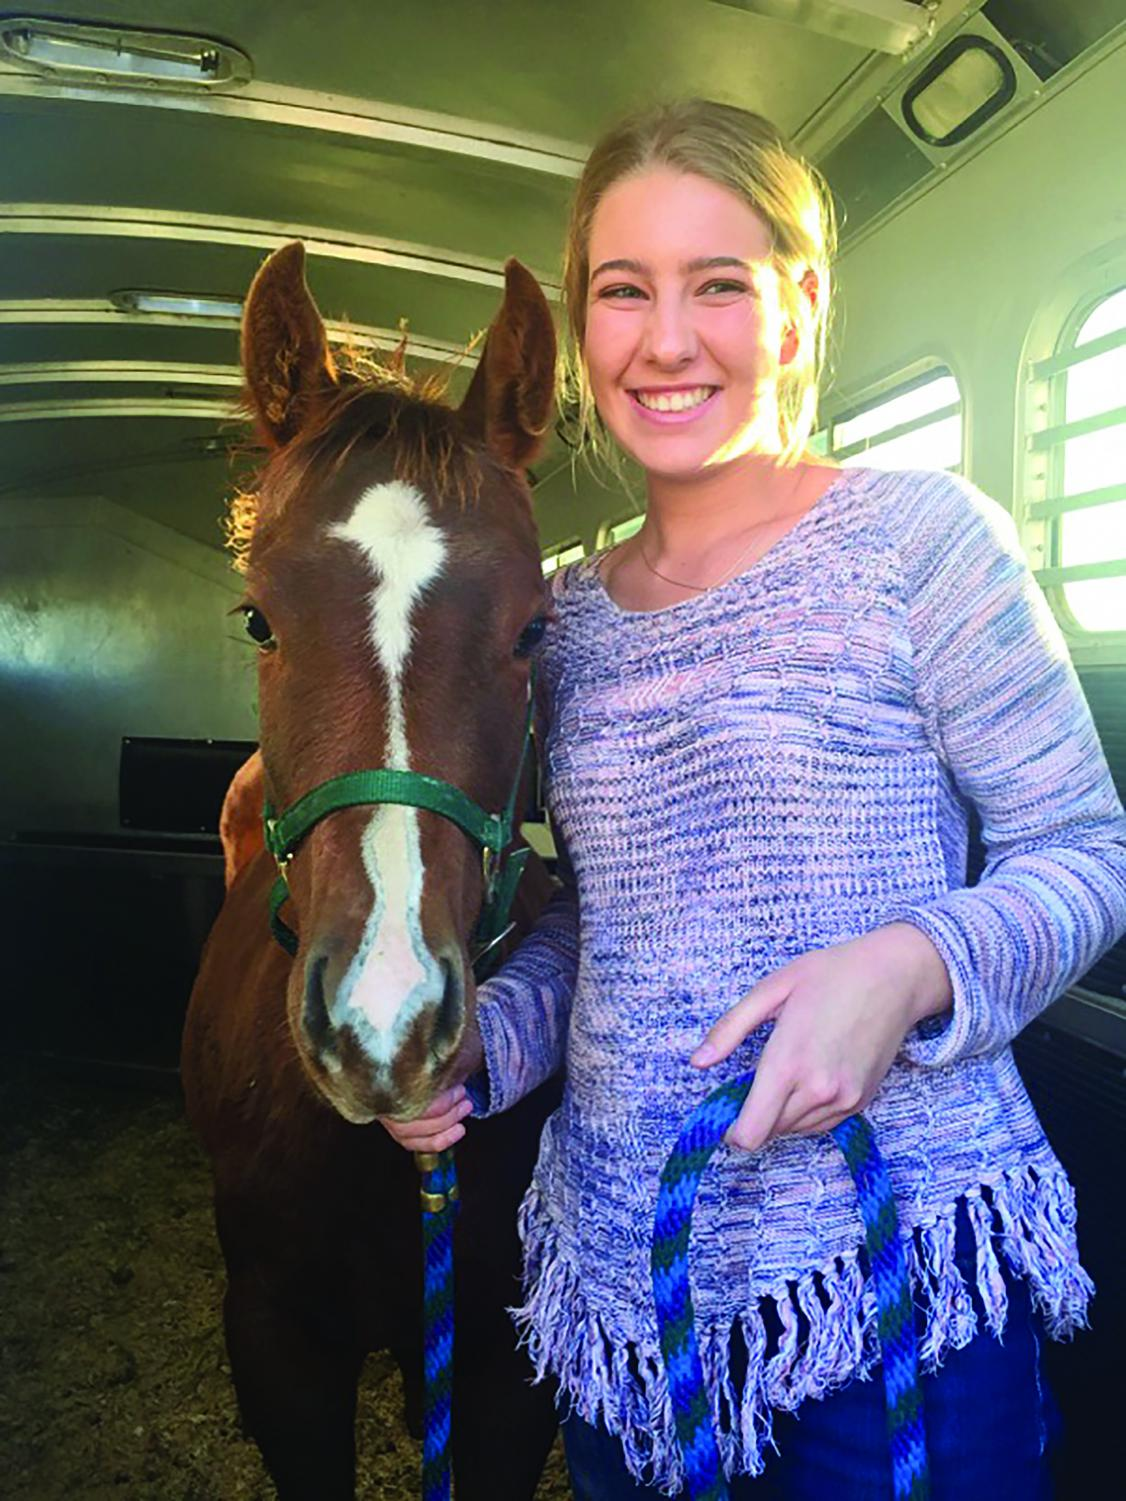 Lauren Weaber standing in the trailer with her new filly, Ivy.